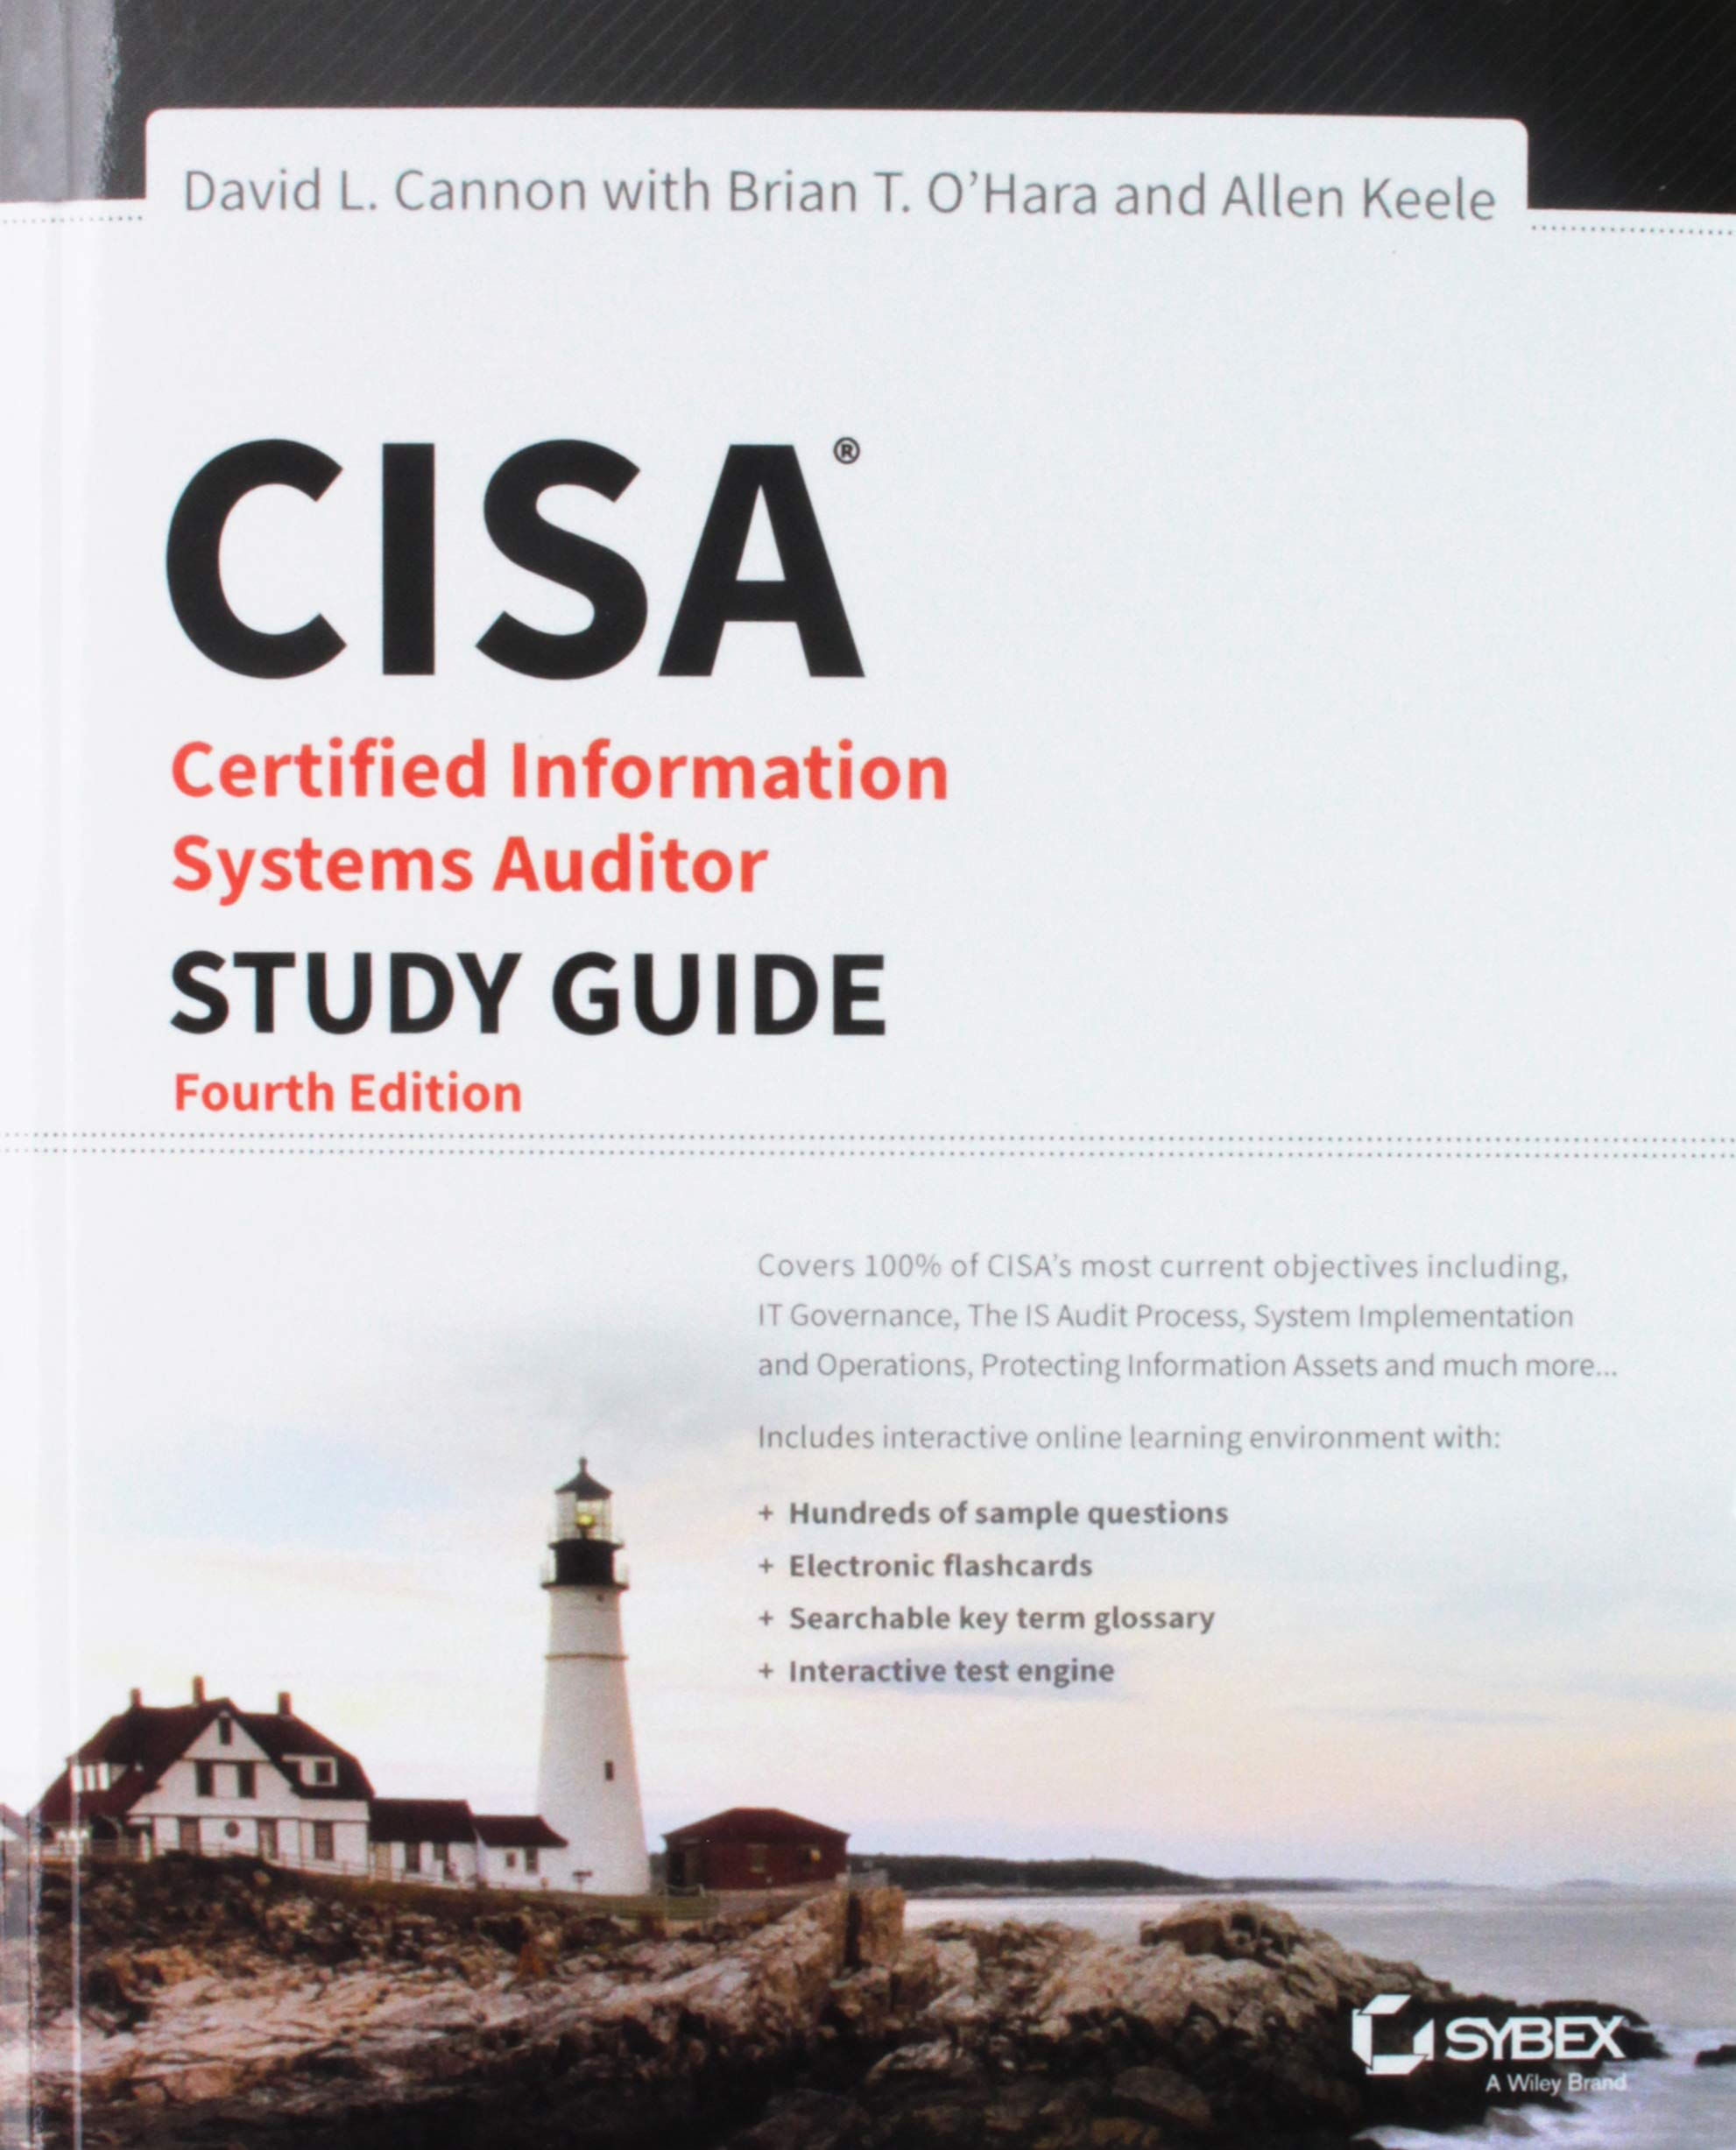 CISA Certified Information Systems Auditor Study Guide, 4th Edition:  Amazon.co.uk: David L. Cannon, Allen Keele: 9781119056249: Books